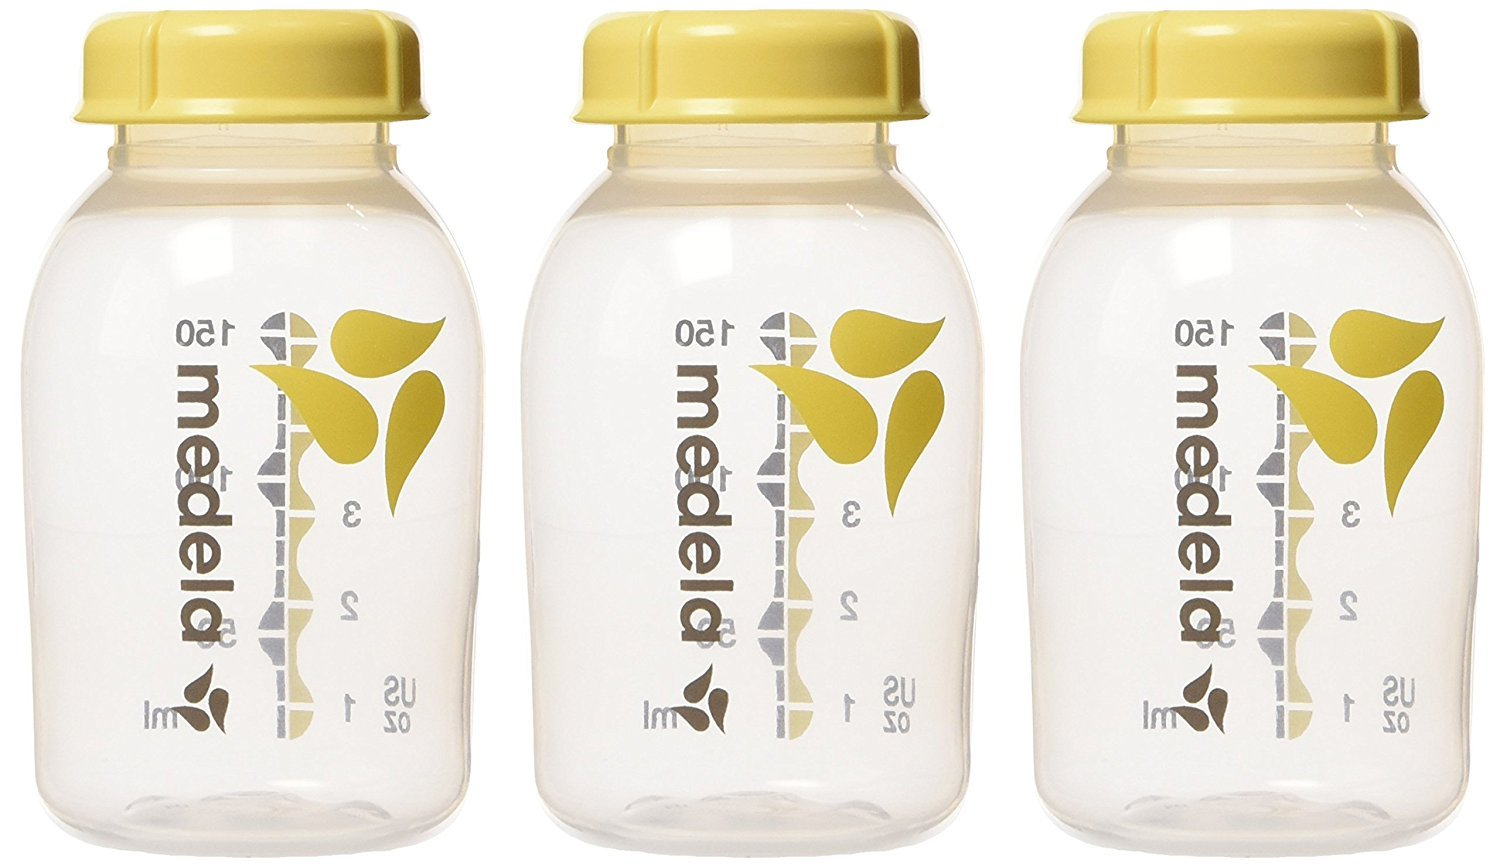 Medela Breast Milk Bottle Set 150ml - 3 Pack Inc. CA 26220